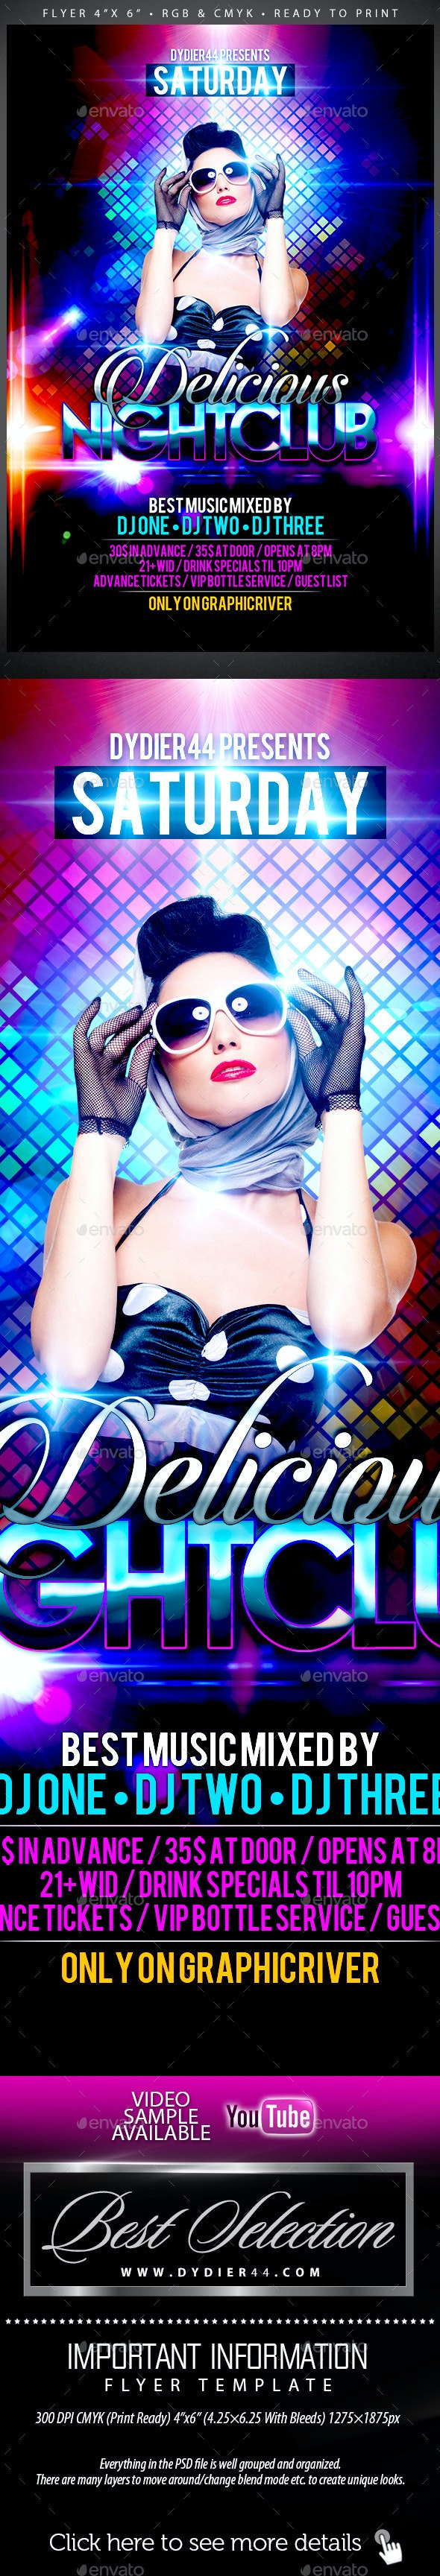 Delicious Nightclub (Flyer Template 4x6) - Clubs & Parties Events